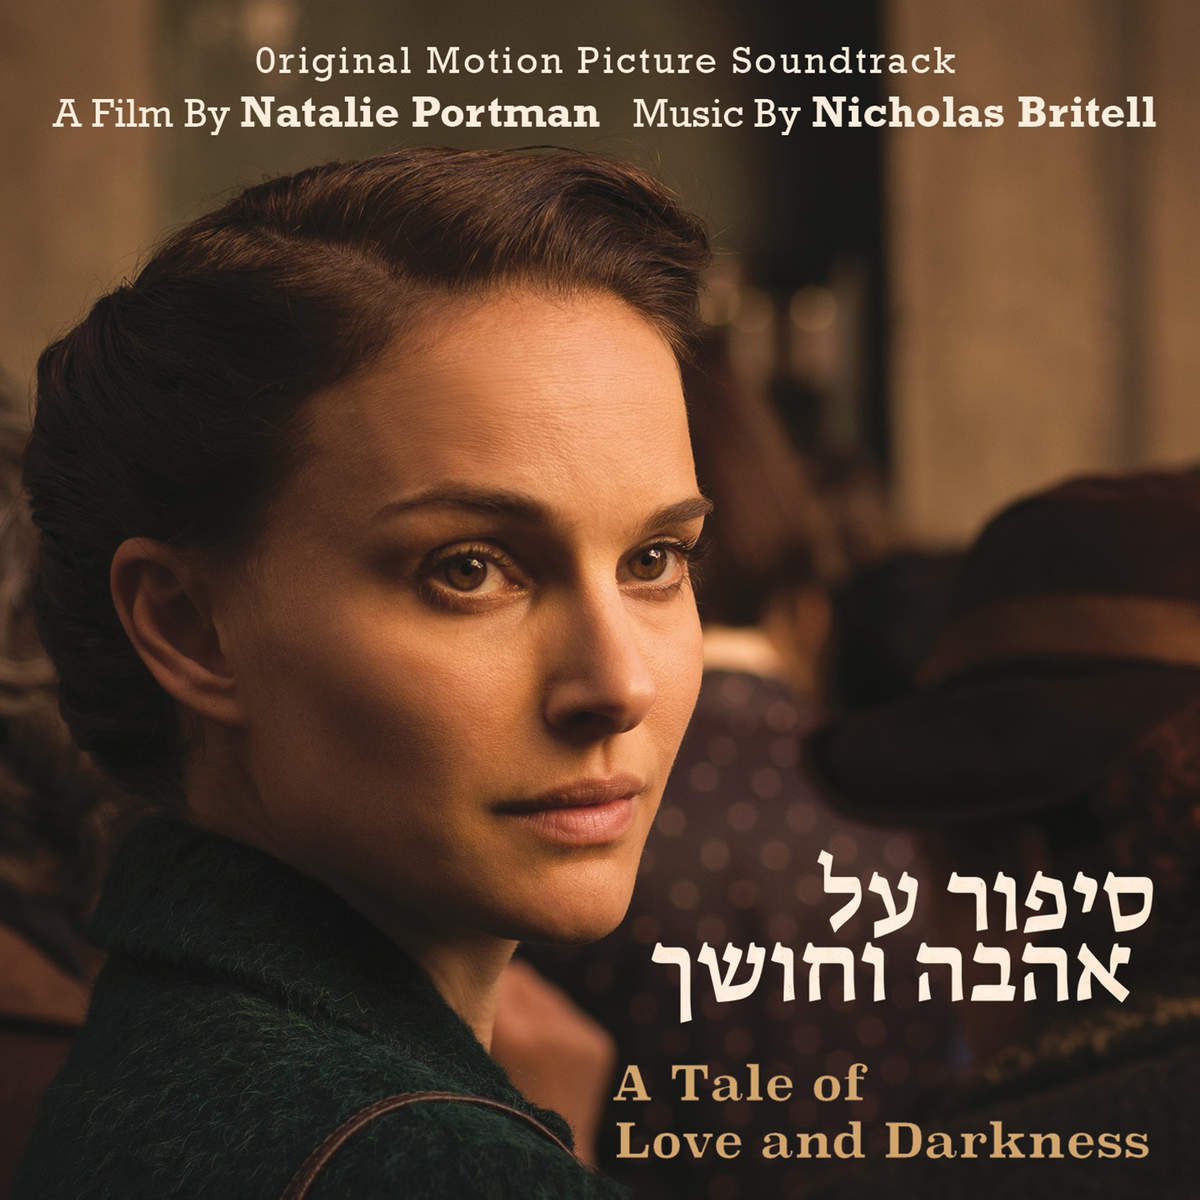 A Tale of Love and Darkness Original Motion Picture Soundtrack